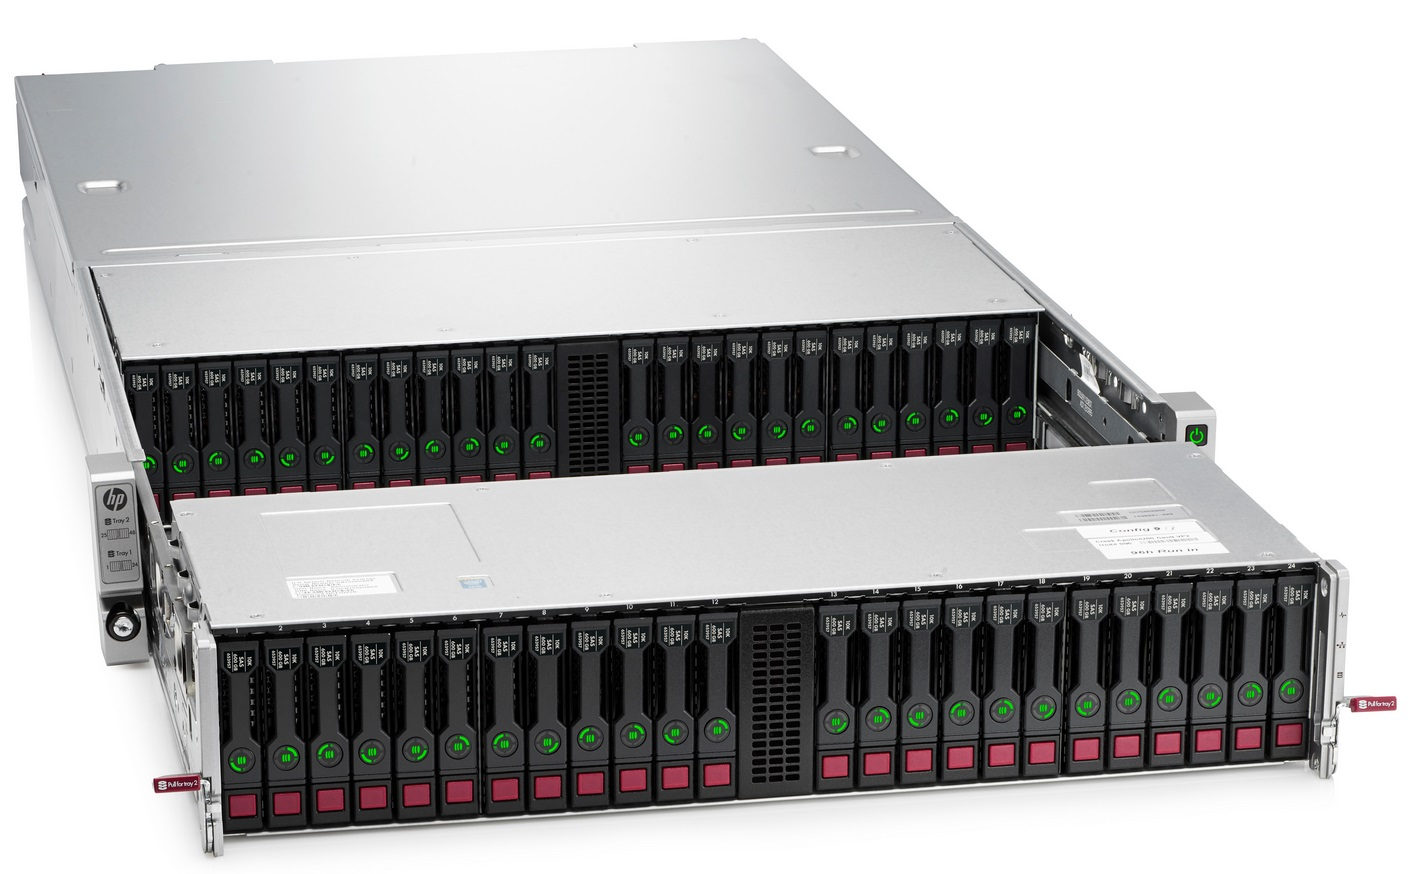 HPE Apollo 4000 Systems